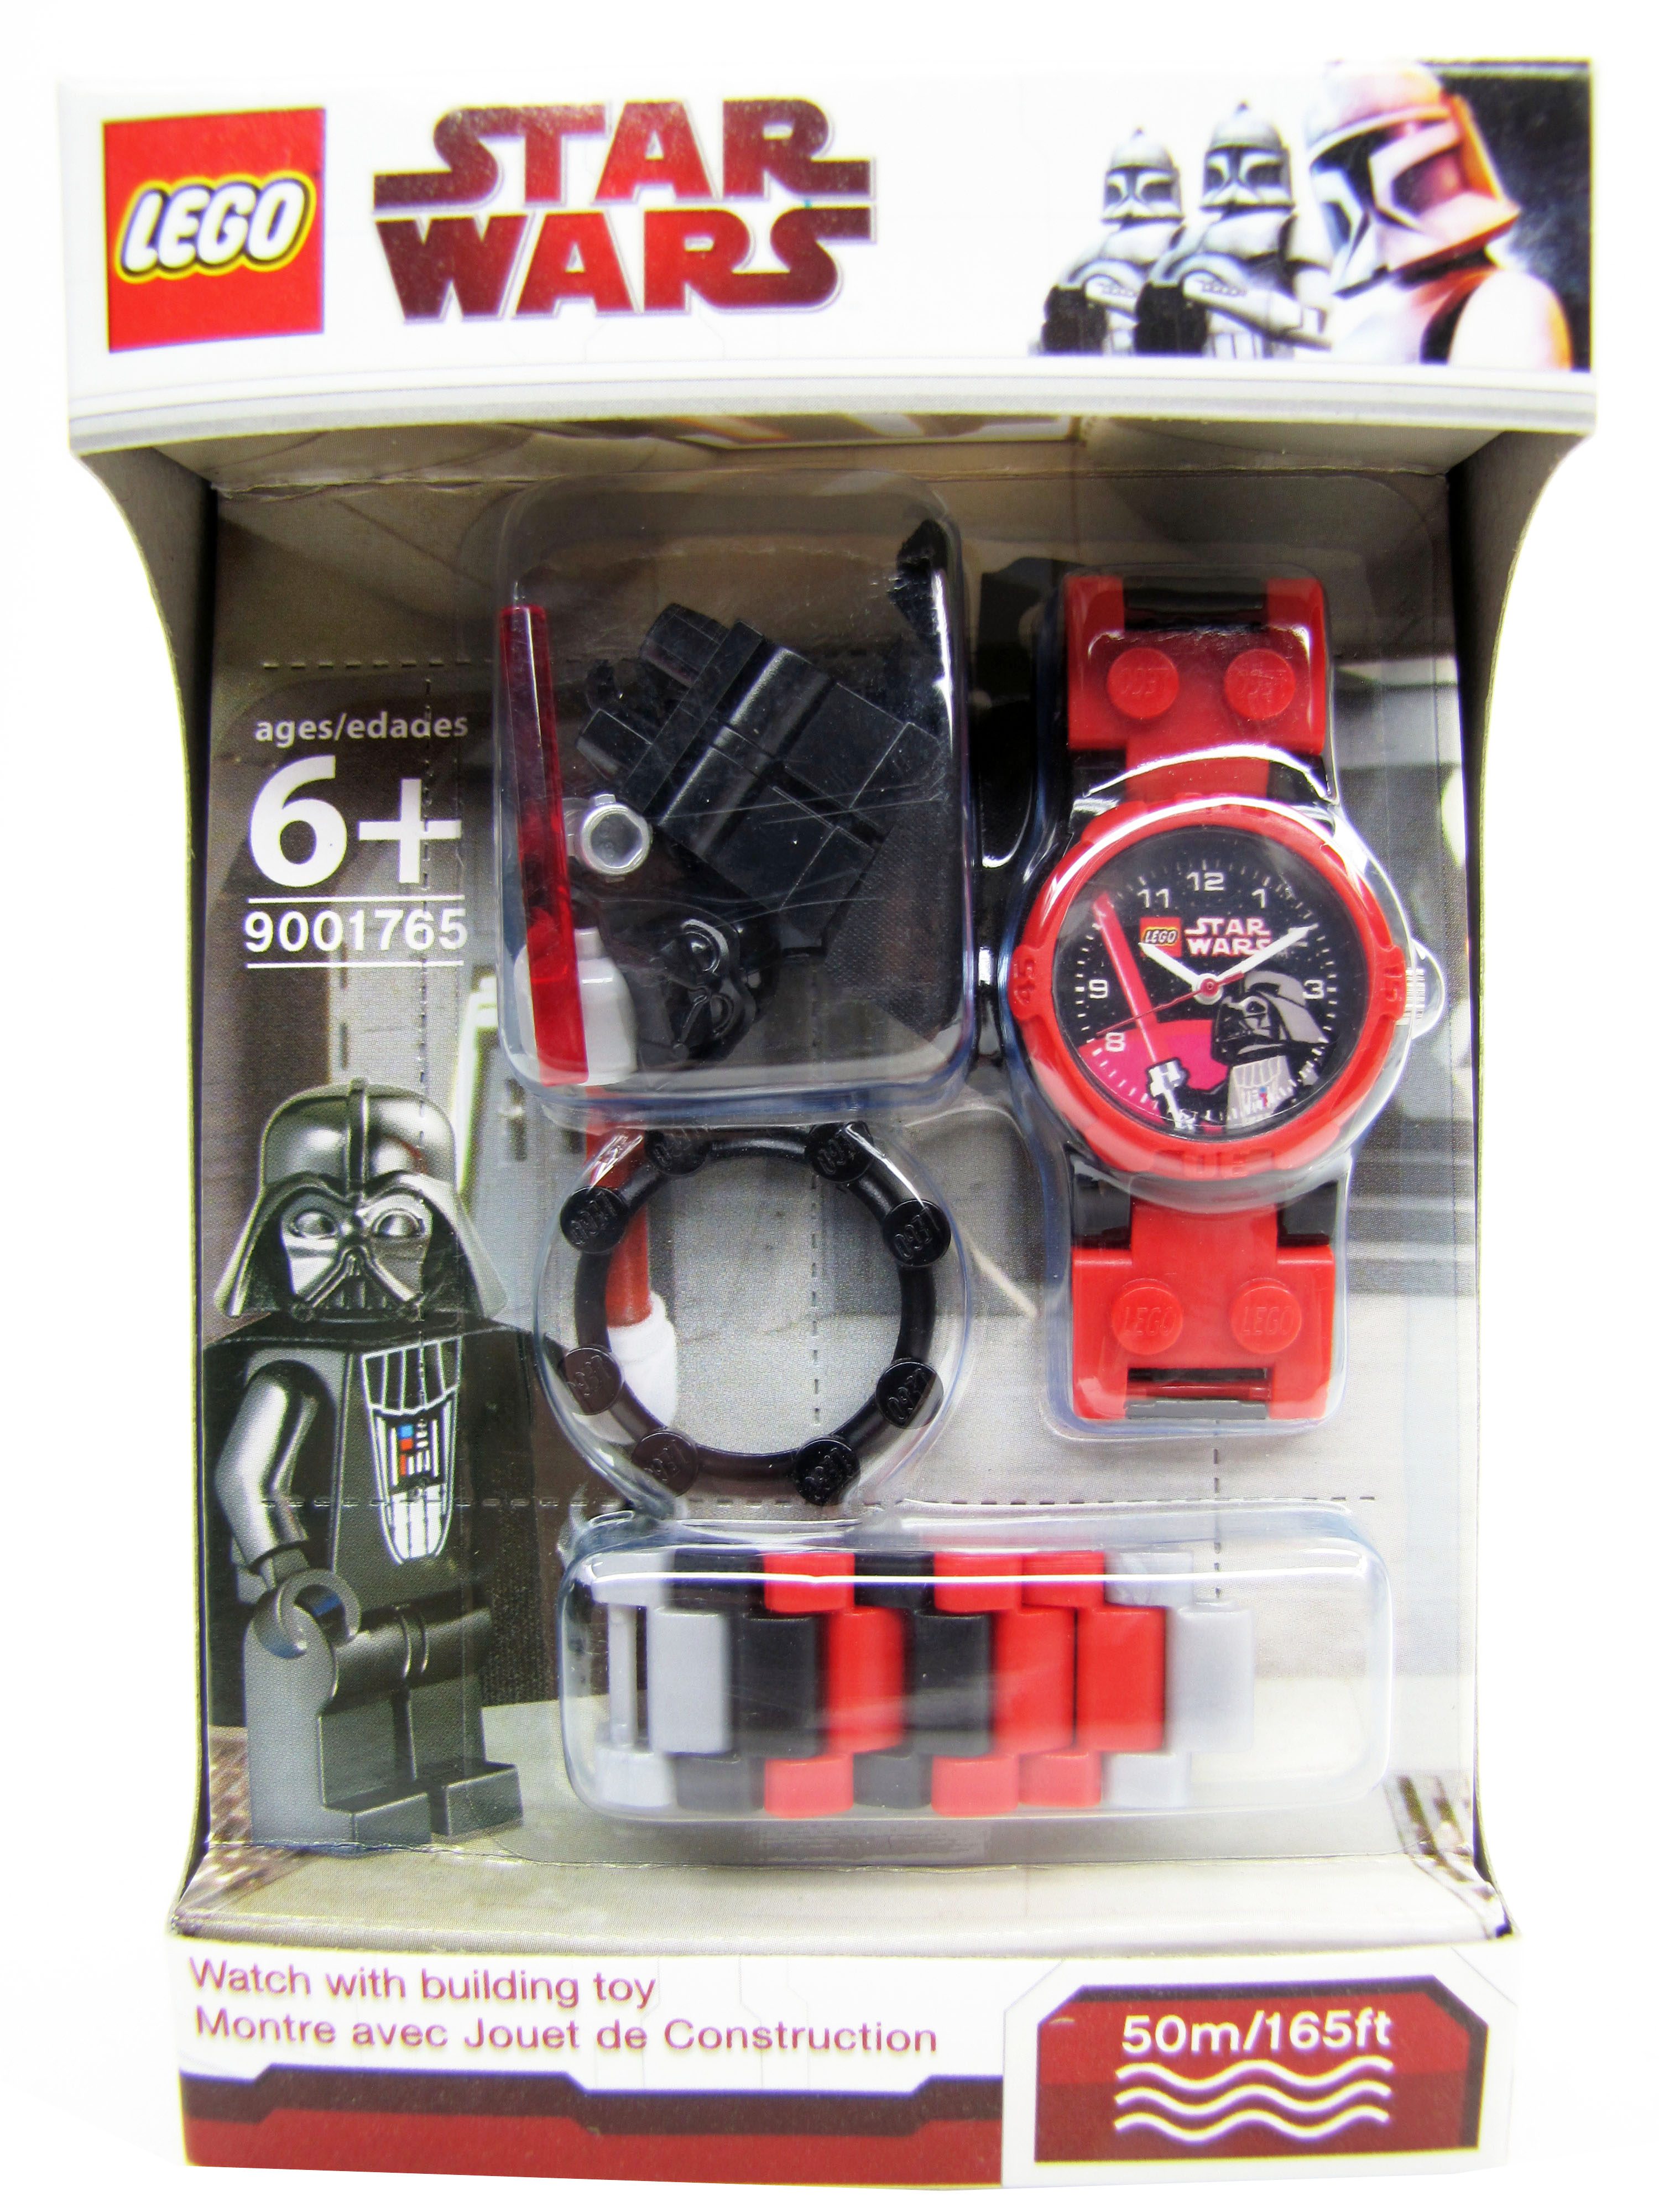 2010 Lego Star Wars Darth Vader Minifigure Watch NEW Lego Time 900175